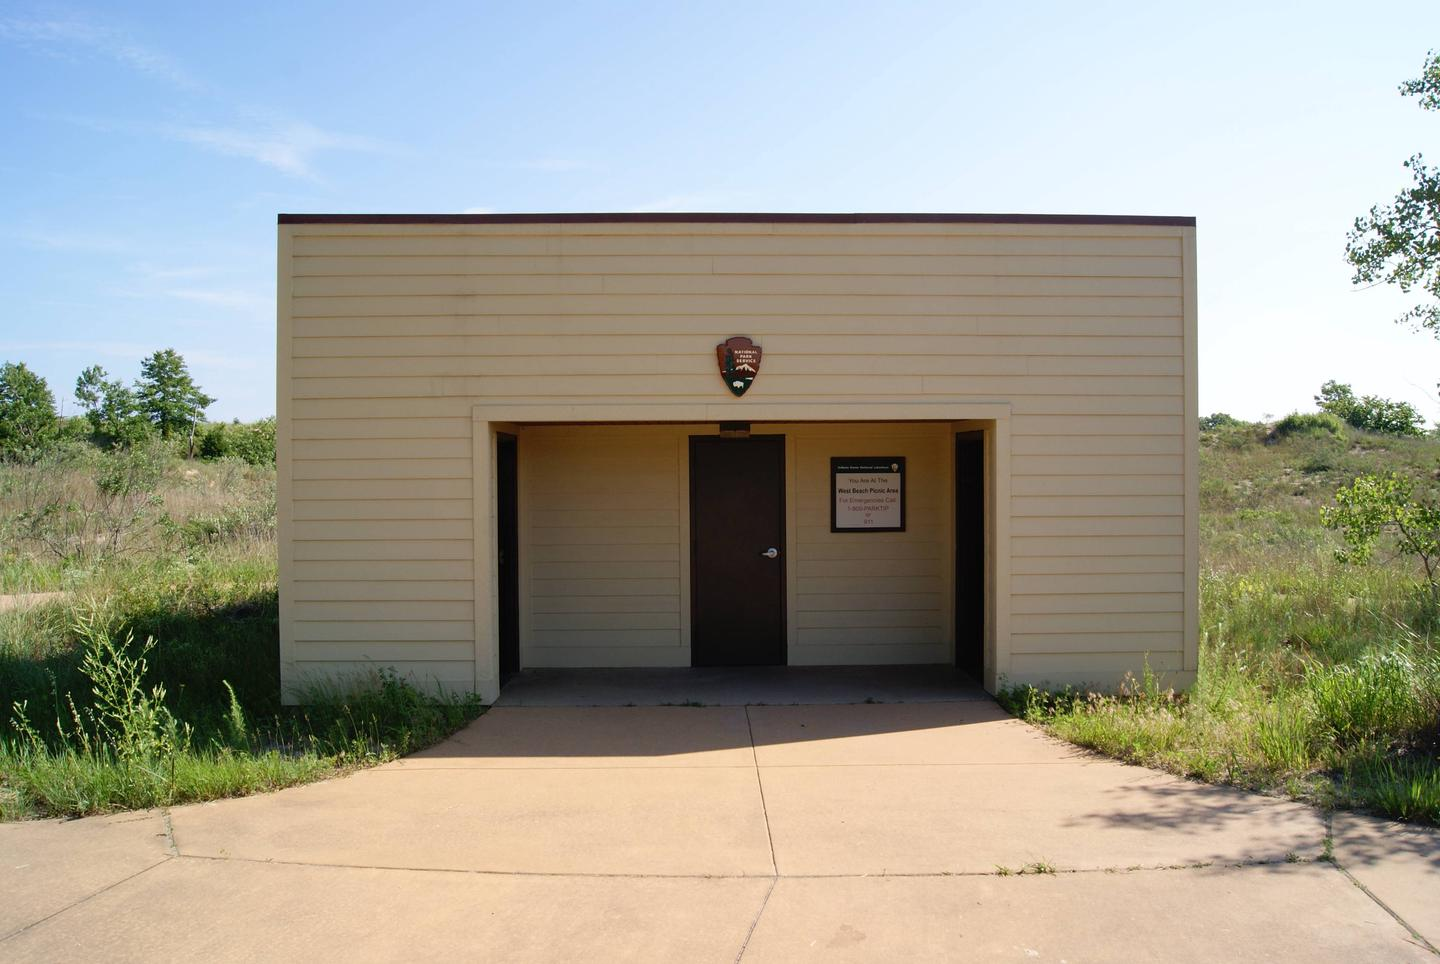 Bathrooms for West Beach Picnic Shelters